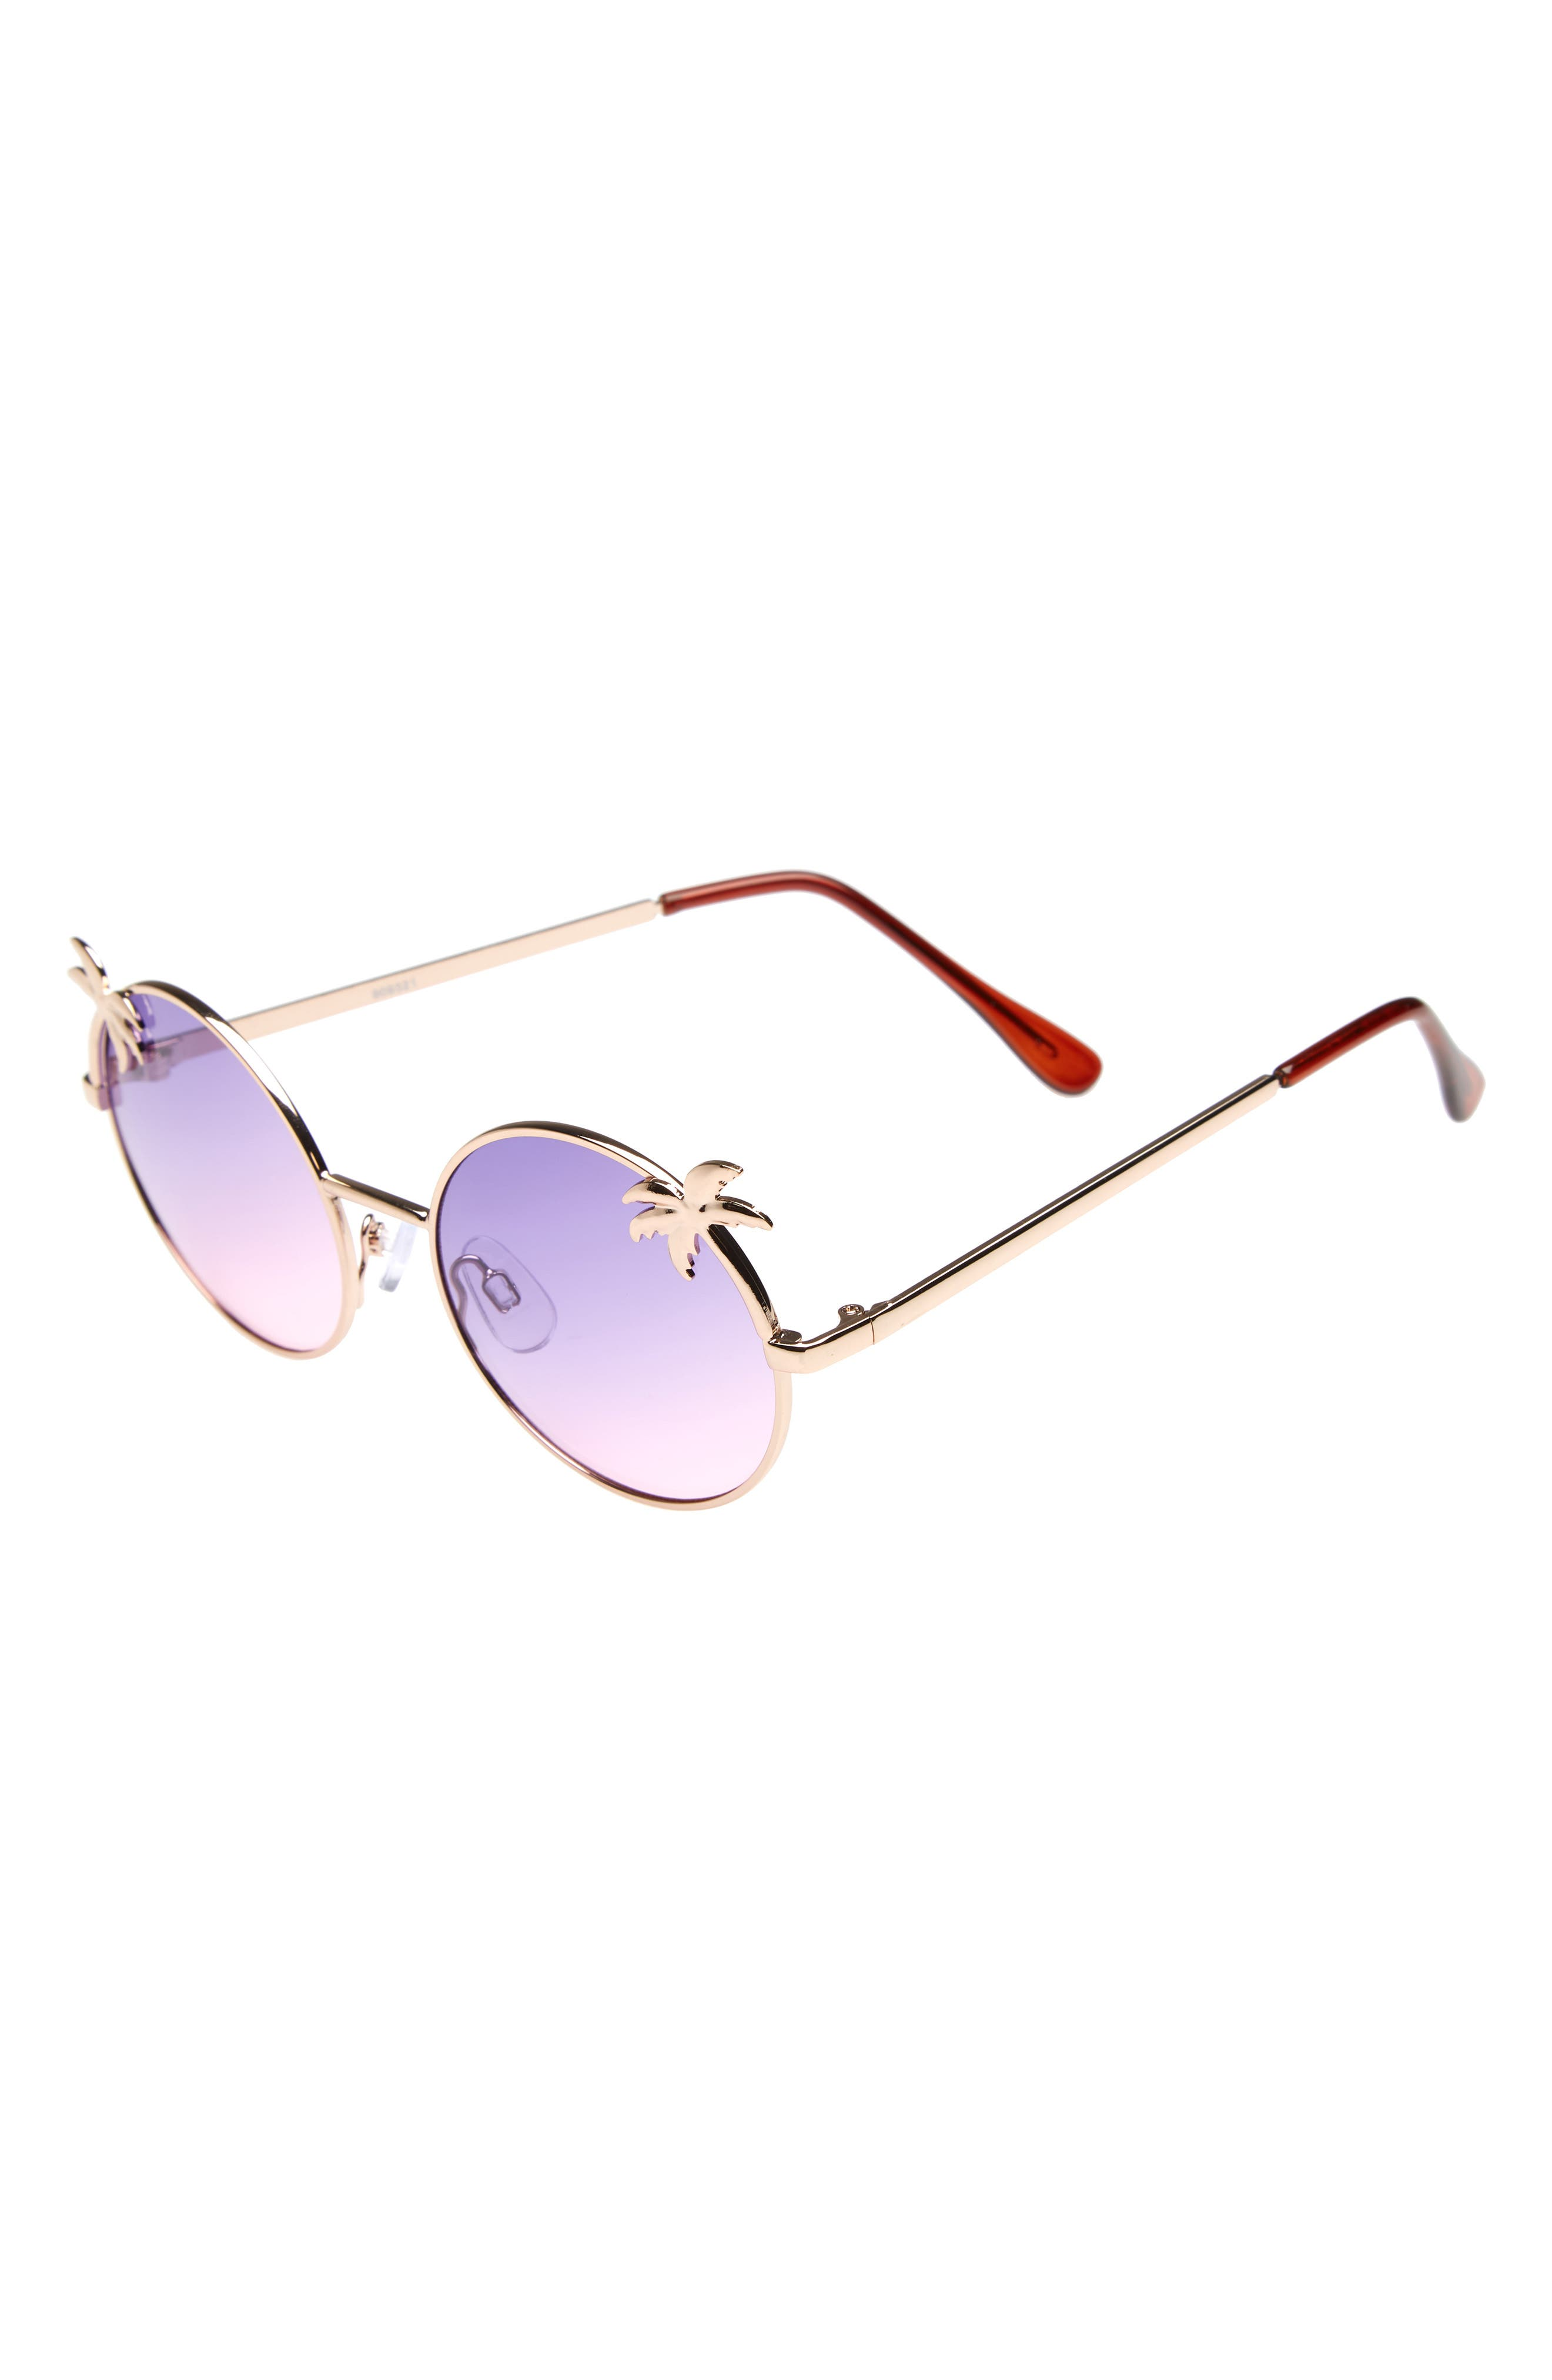 Palm Tree Sunglasses,                         Main,                         color, 500